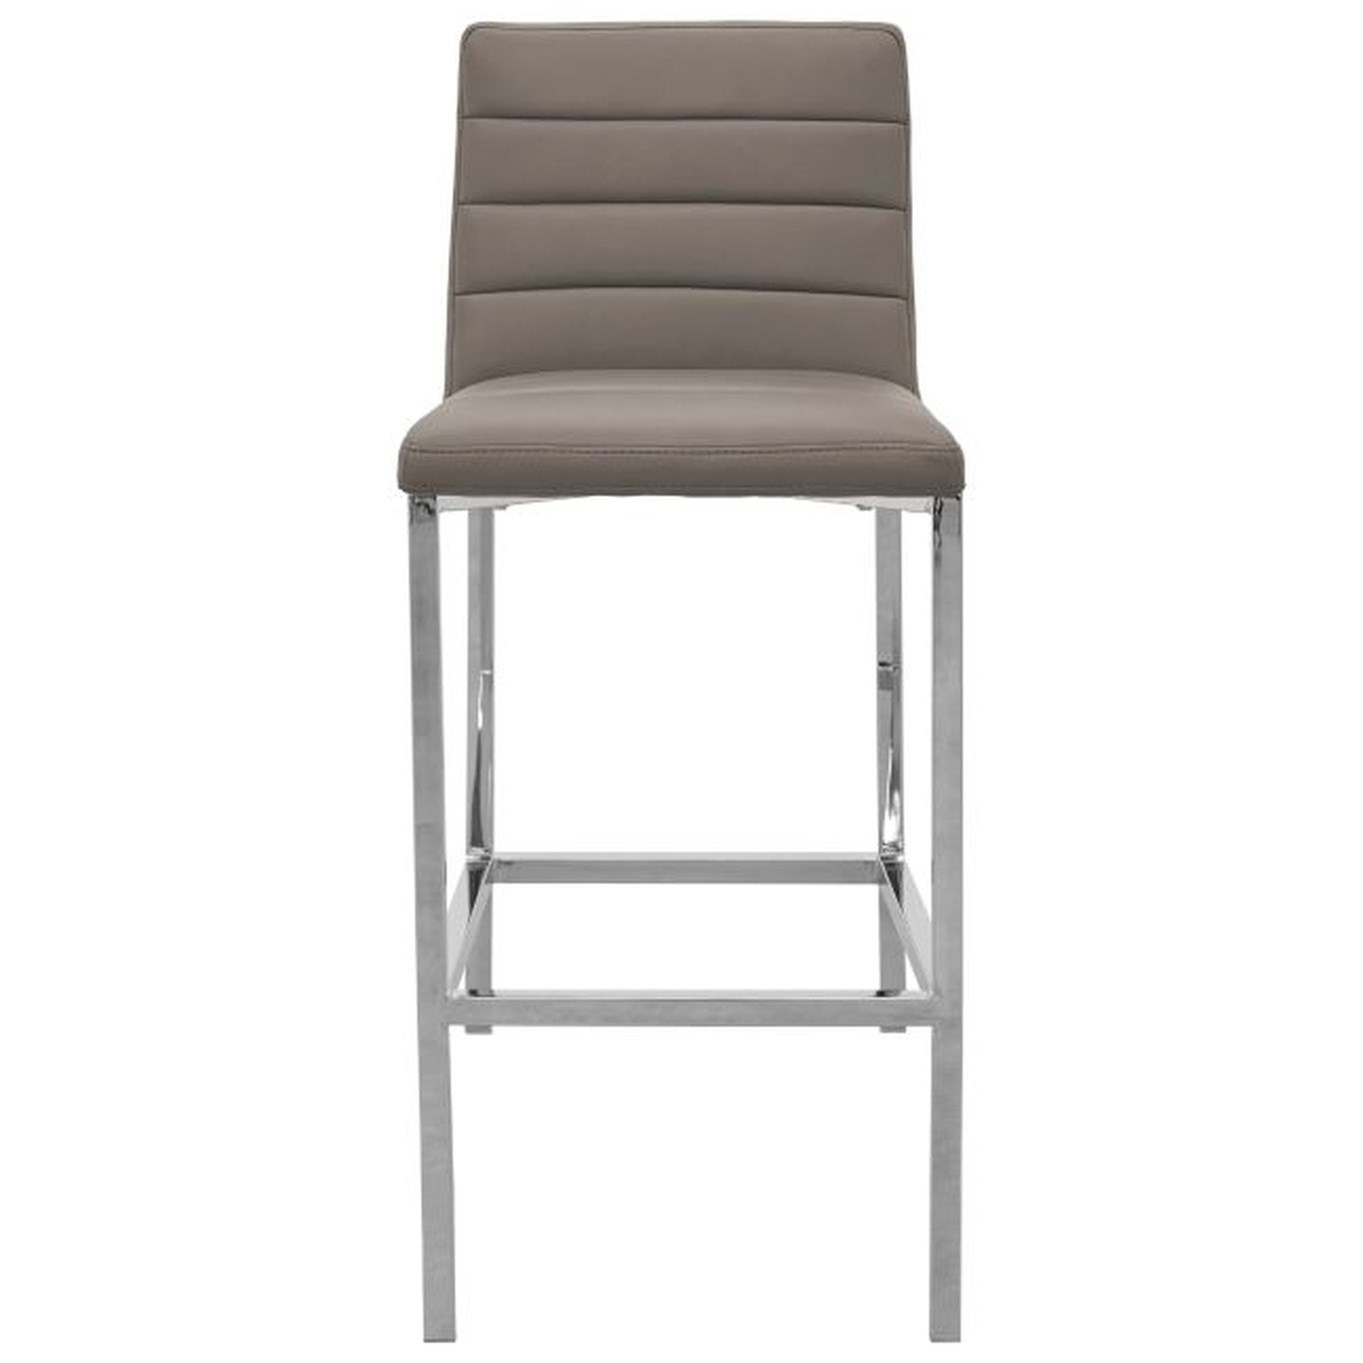 Metal Back Bar Stool in Taupe